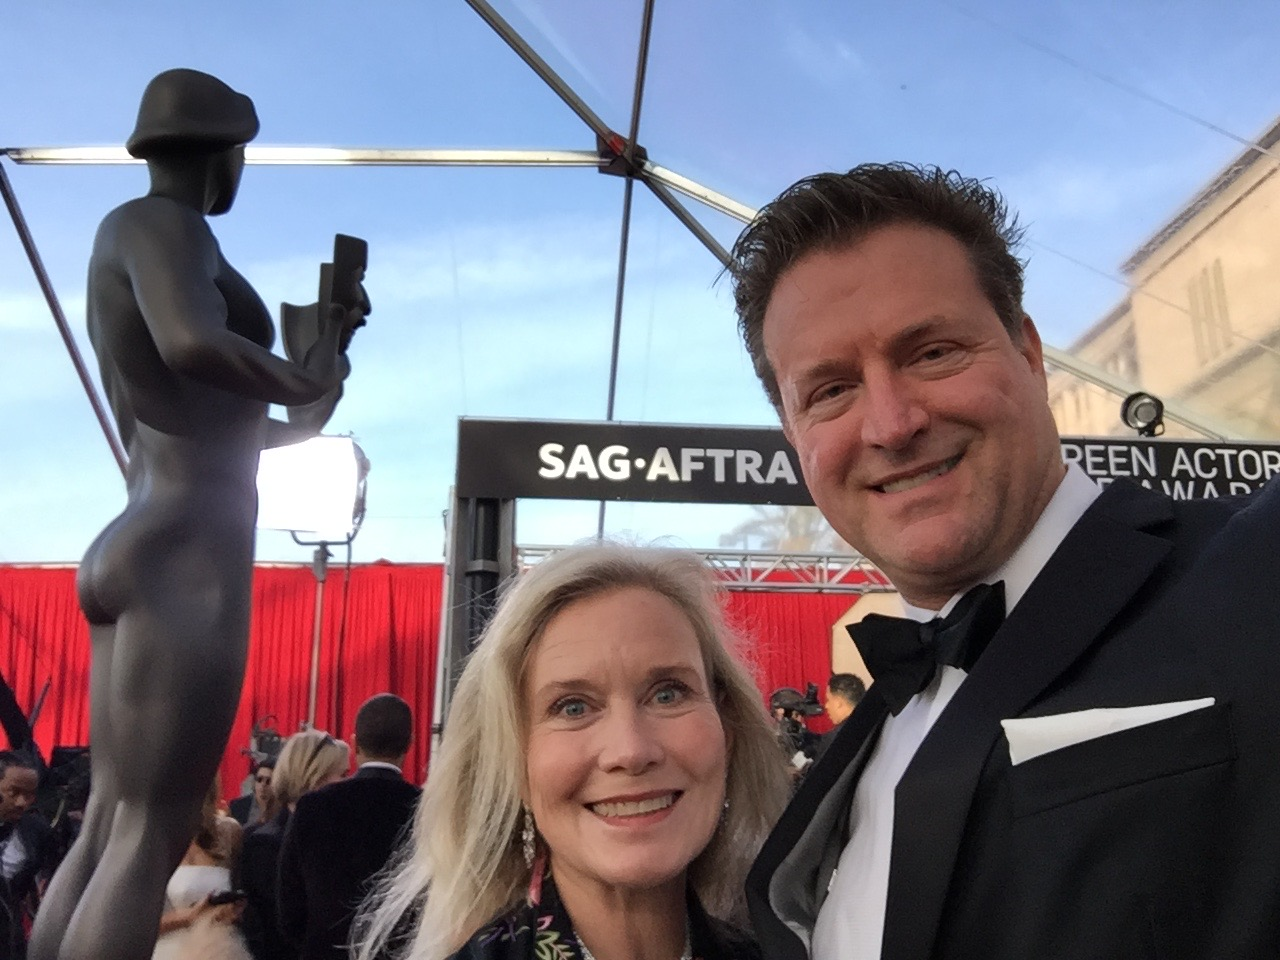 In front of the exposed-buttock statue-man at the SAG Awards 2018.